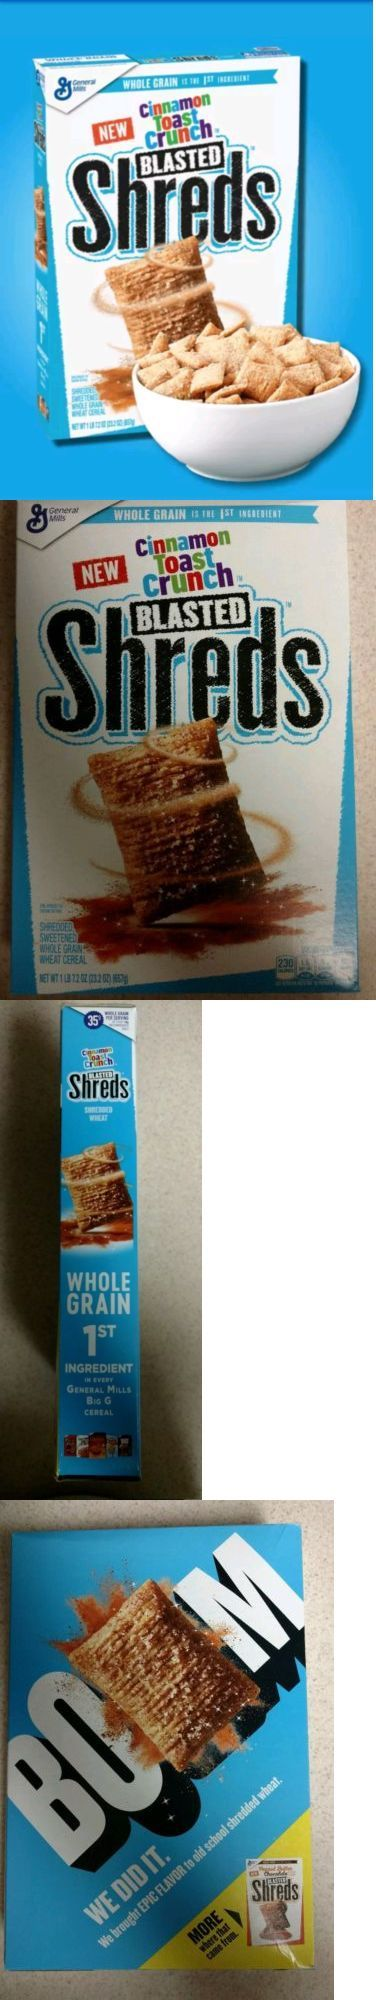 Cereals and Breakfast Foods 62717: Limited Edition Cinnamon Toast Crunch Blasted Shreds Discontinued Collectible -> BUY IT NOW ONLY: $14.98 on #eBay #cereals #breakfast #foods #limited #edition #cinnamon #toast #crunch #blasted #shreds #discontinued #collectible #cinnamontoastcrunch Cereals and Breakfast Foods 62717: Limited Edition Cinnamon Toast Crunch Blasted Shreds Discontinued Collectible -> BUY IT NOW ONLY: $14.98 on #eBay #cereals #breakfast #foods #limited #edition #cinnamon #toast #crun #cinnamontoastcrunch